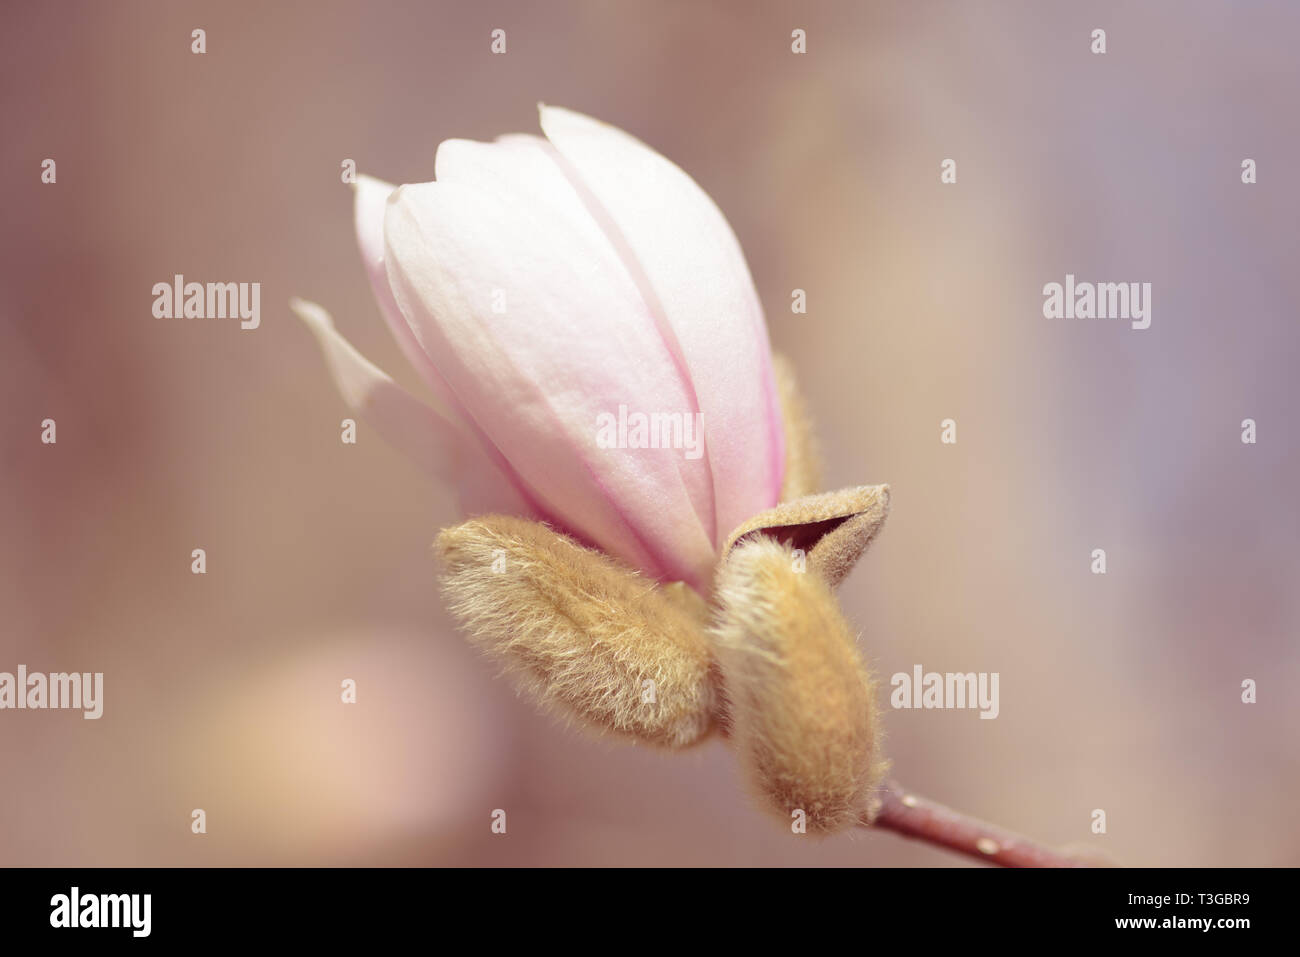 Magnolia is a large genus of about 210 flowering plant species in the subfamily Magnolioideae of the family Magnoliaceae. It is named after French bot Stock Photo